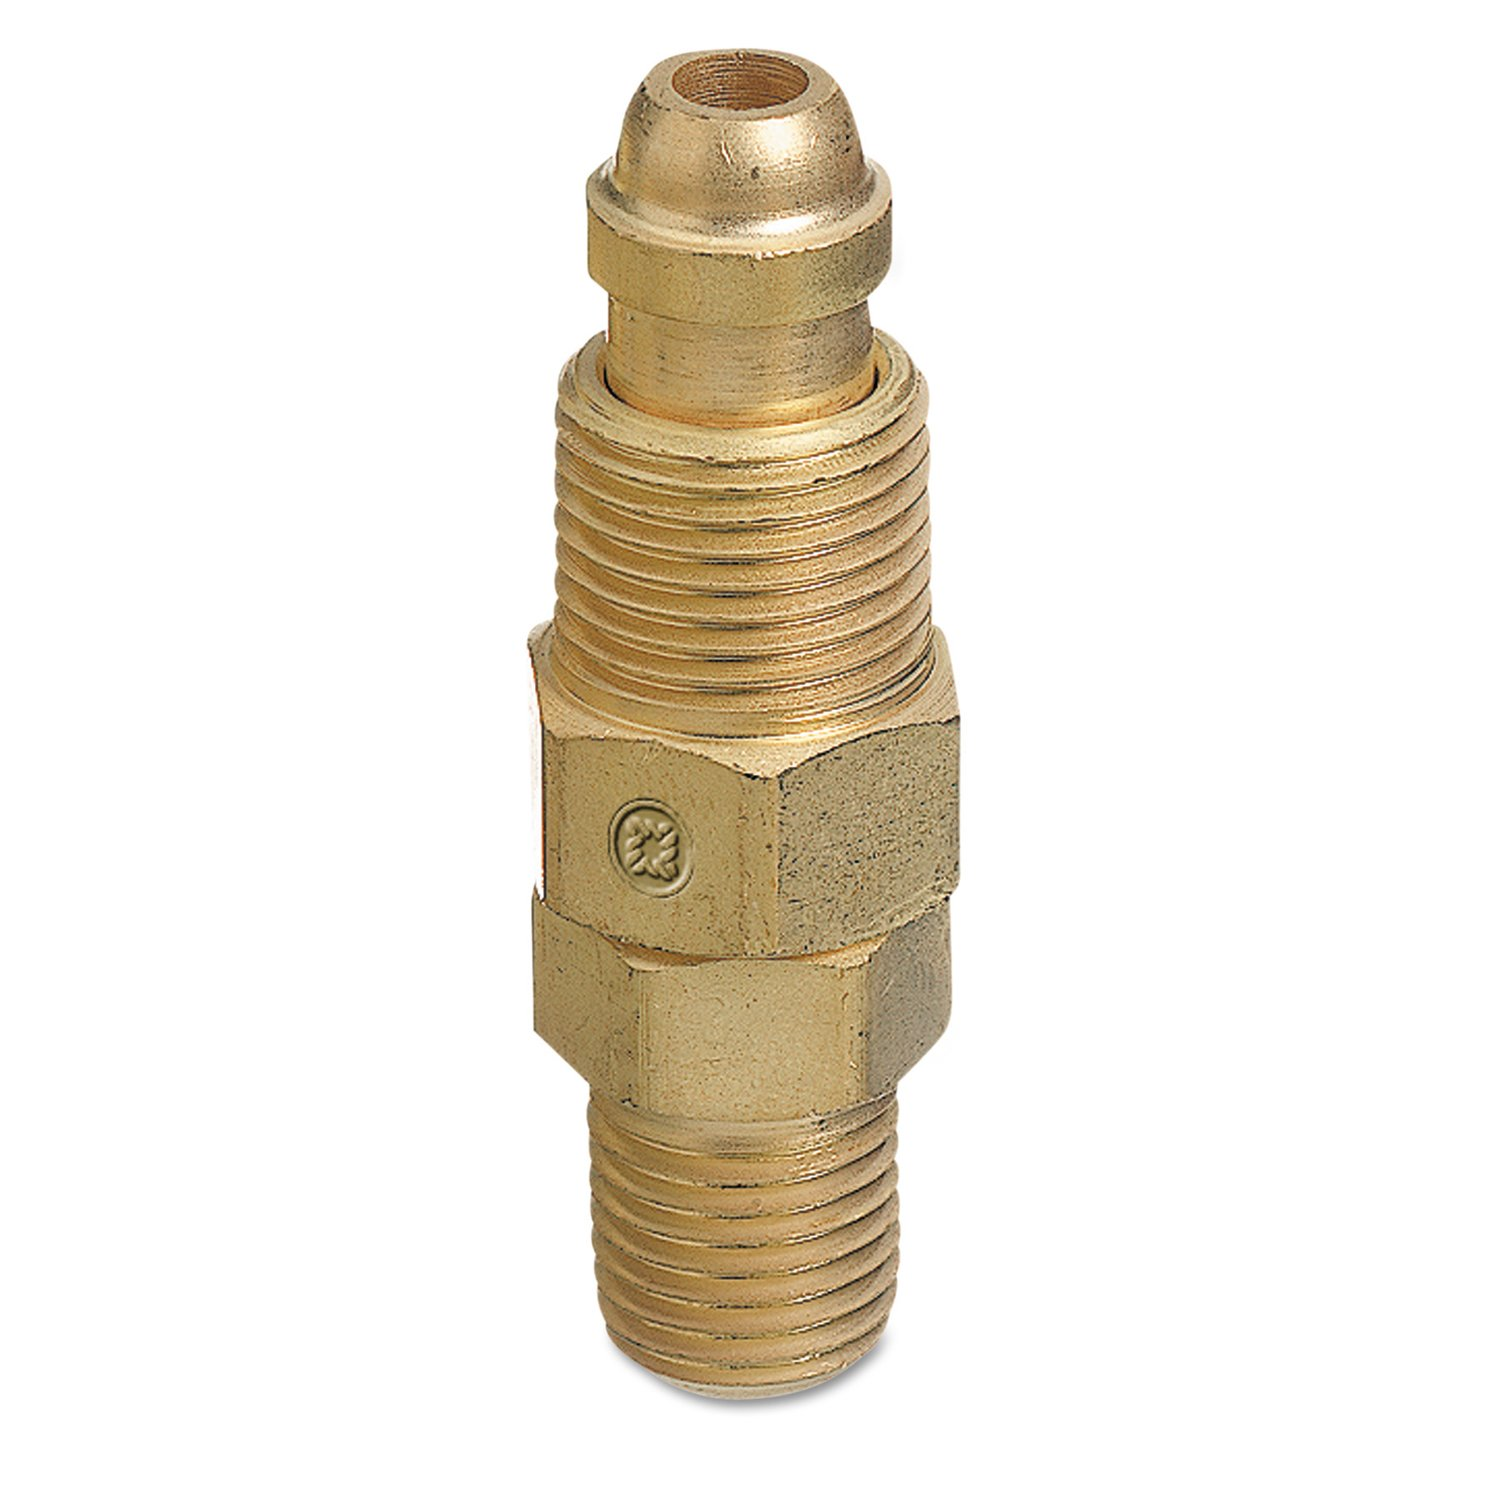 Male//male Connection Straight 0.5 Length B-Size Brass RH Western Enterprises AW-427 Inert Arc Hose /& Torch Adapters